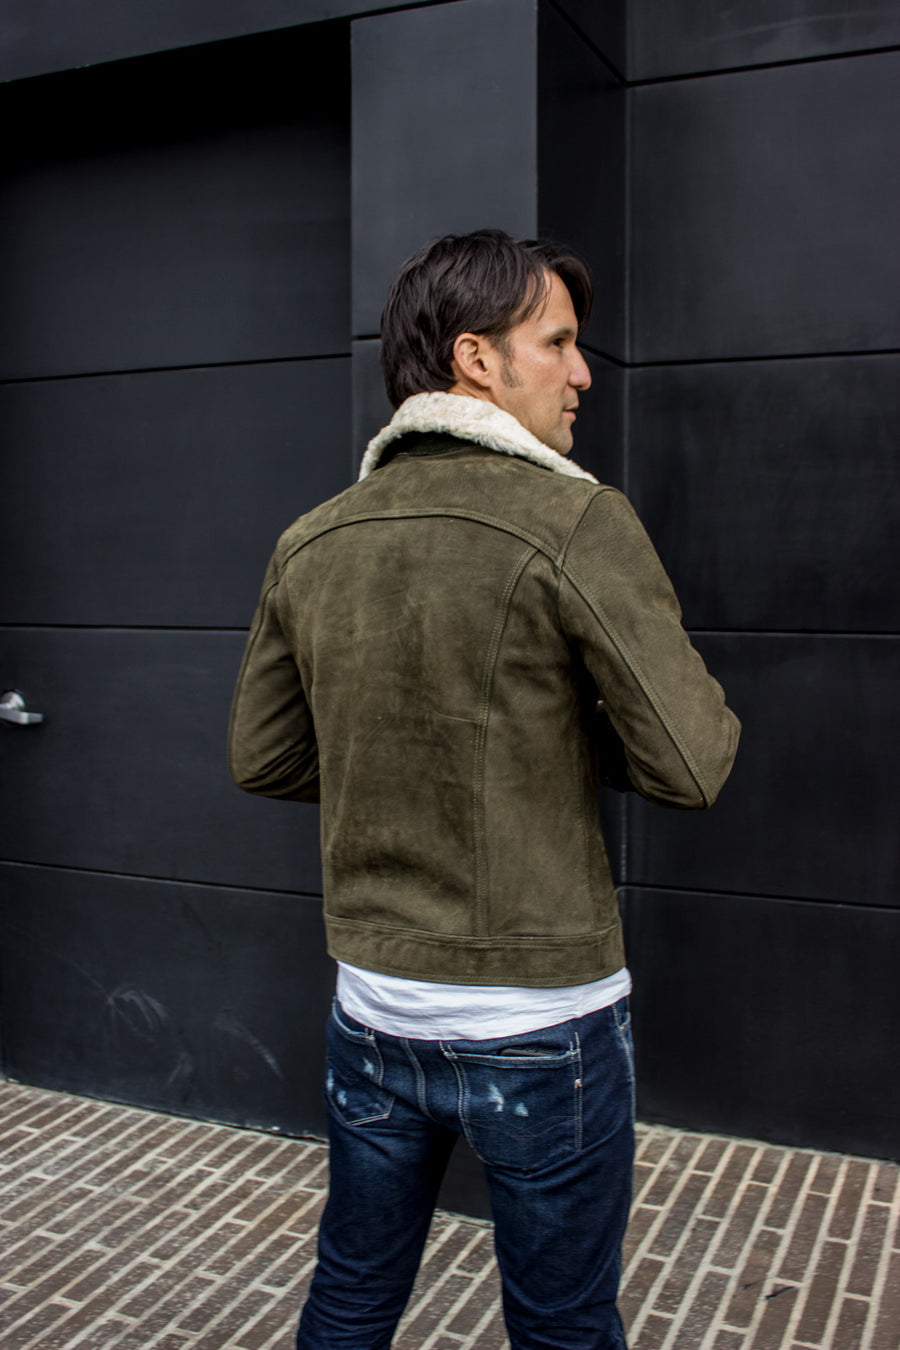 MC DAVE AX Trucker Jacket Shearling Collar in Nubuck Suede - Olive Green  -